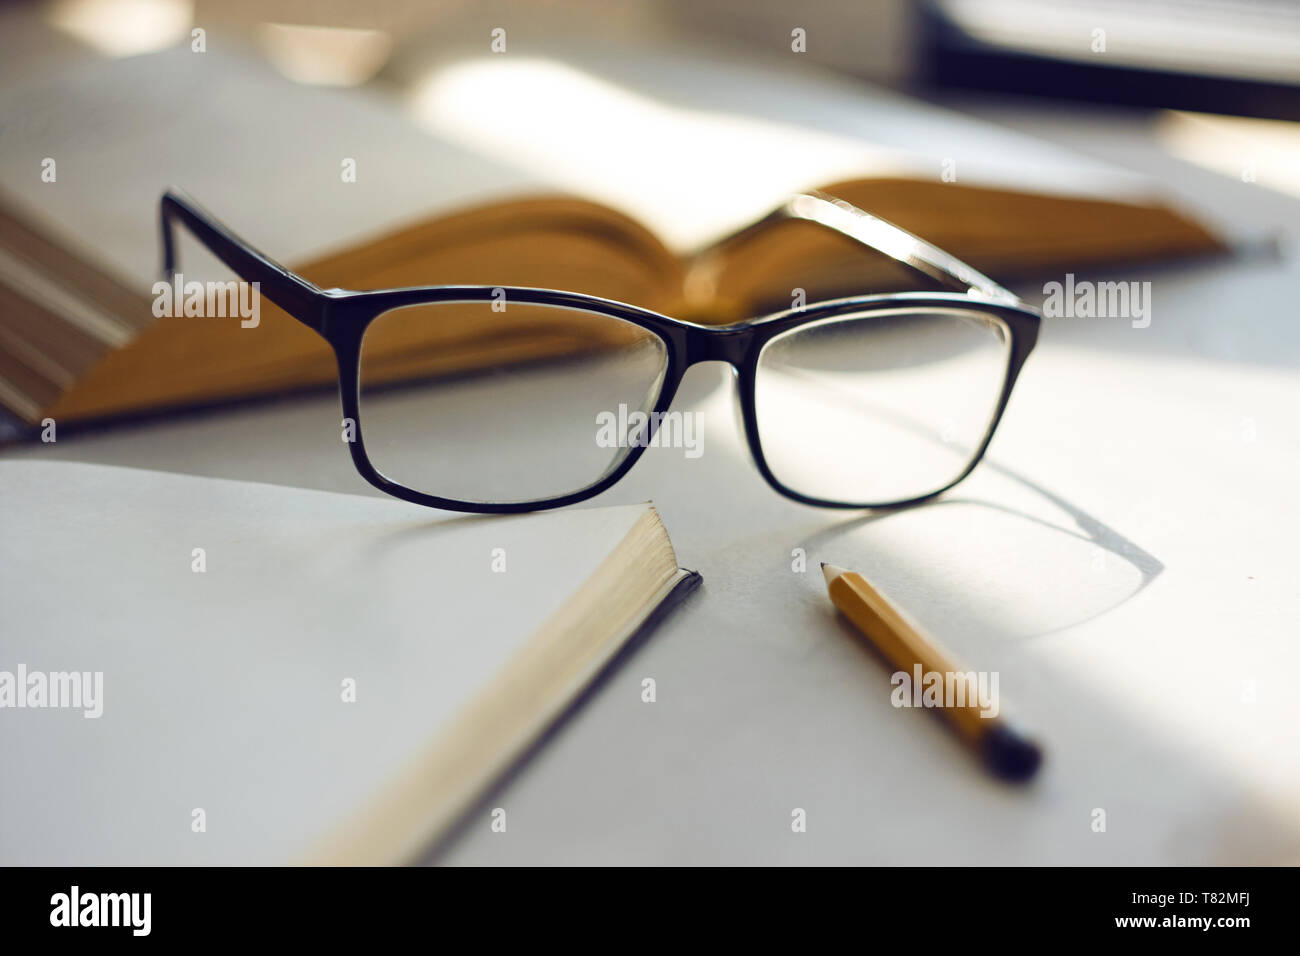 d9a6d6e698a8 On the white surface of the table are an open book, an open notebook,